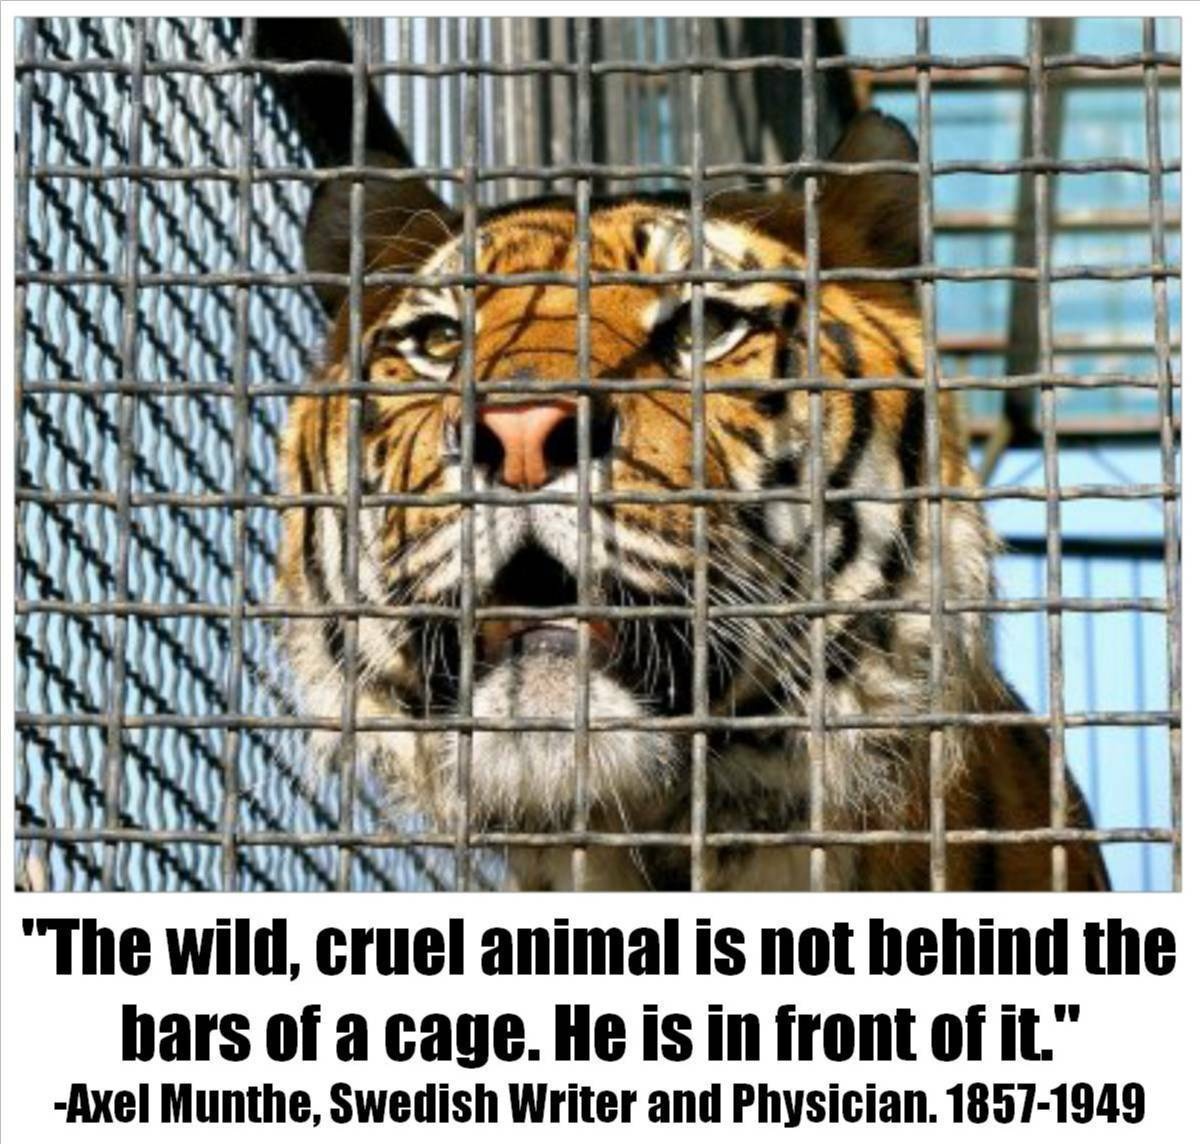 essay on stop cruelty against animals Animal cruelty essay are you against cage fighting in conclusion, animals should have more protection from the abuse testing on animals.